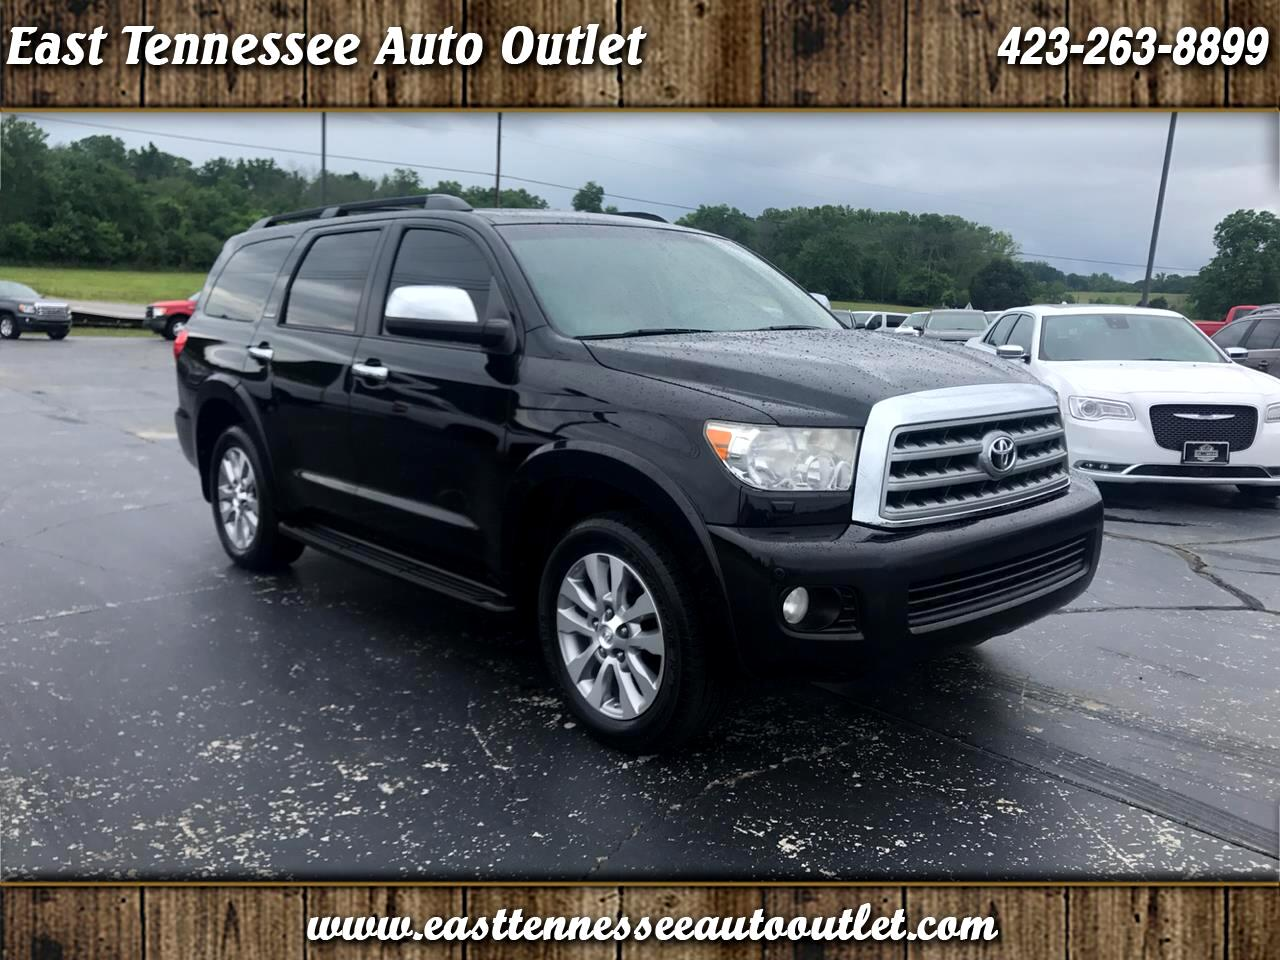 2012 Toyota Sequoia 2WD 4dr Limited (Natl)